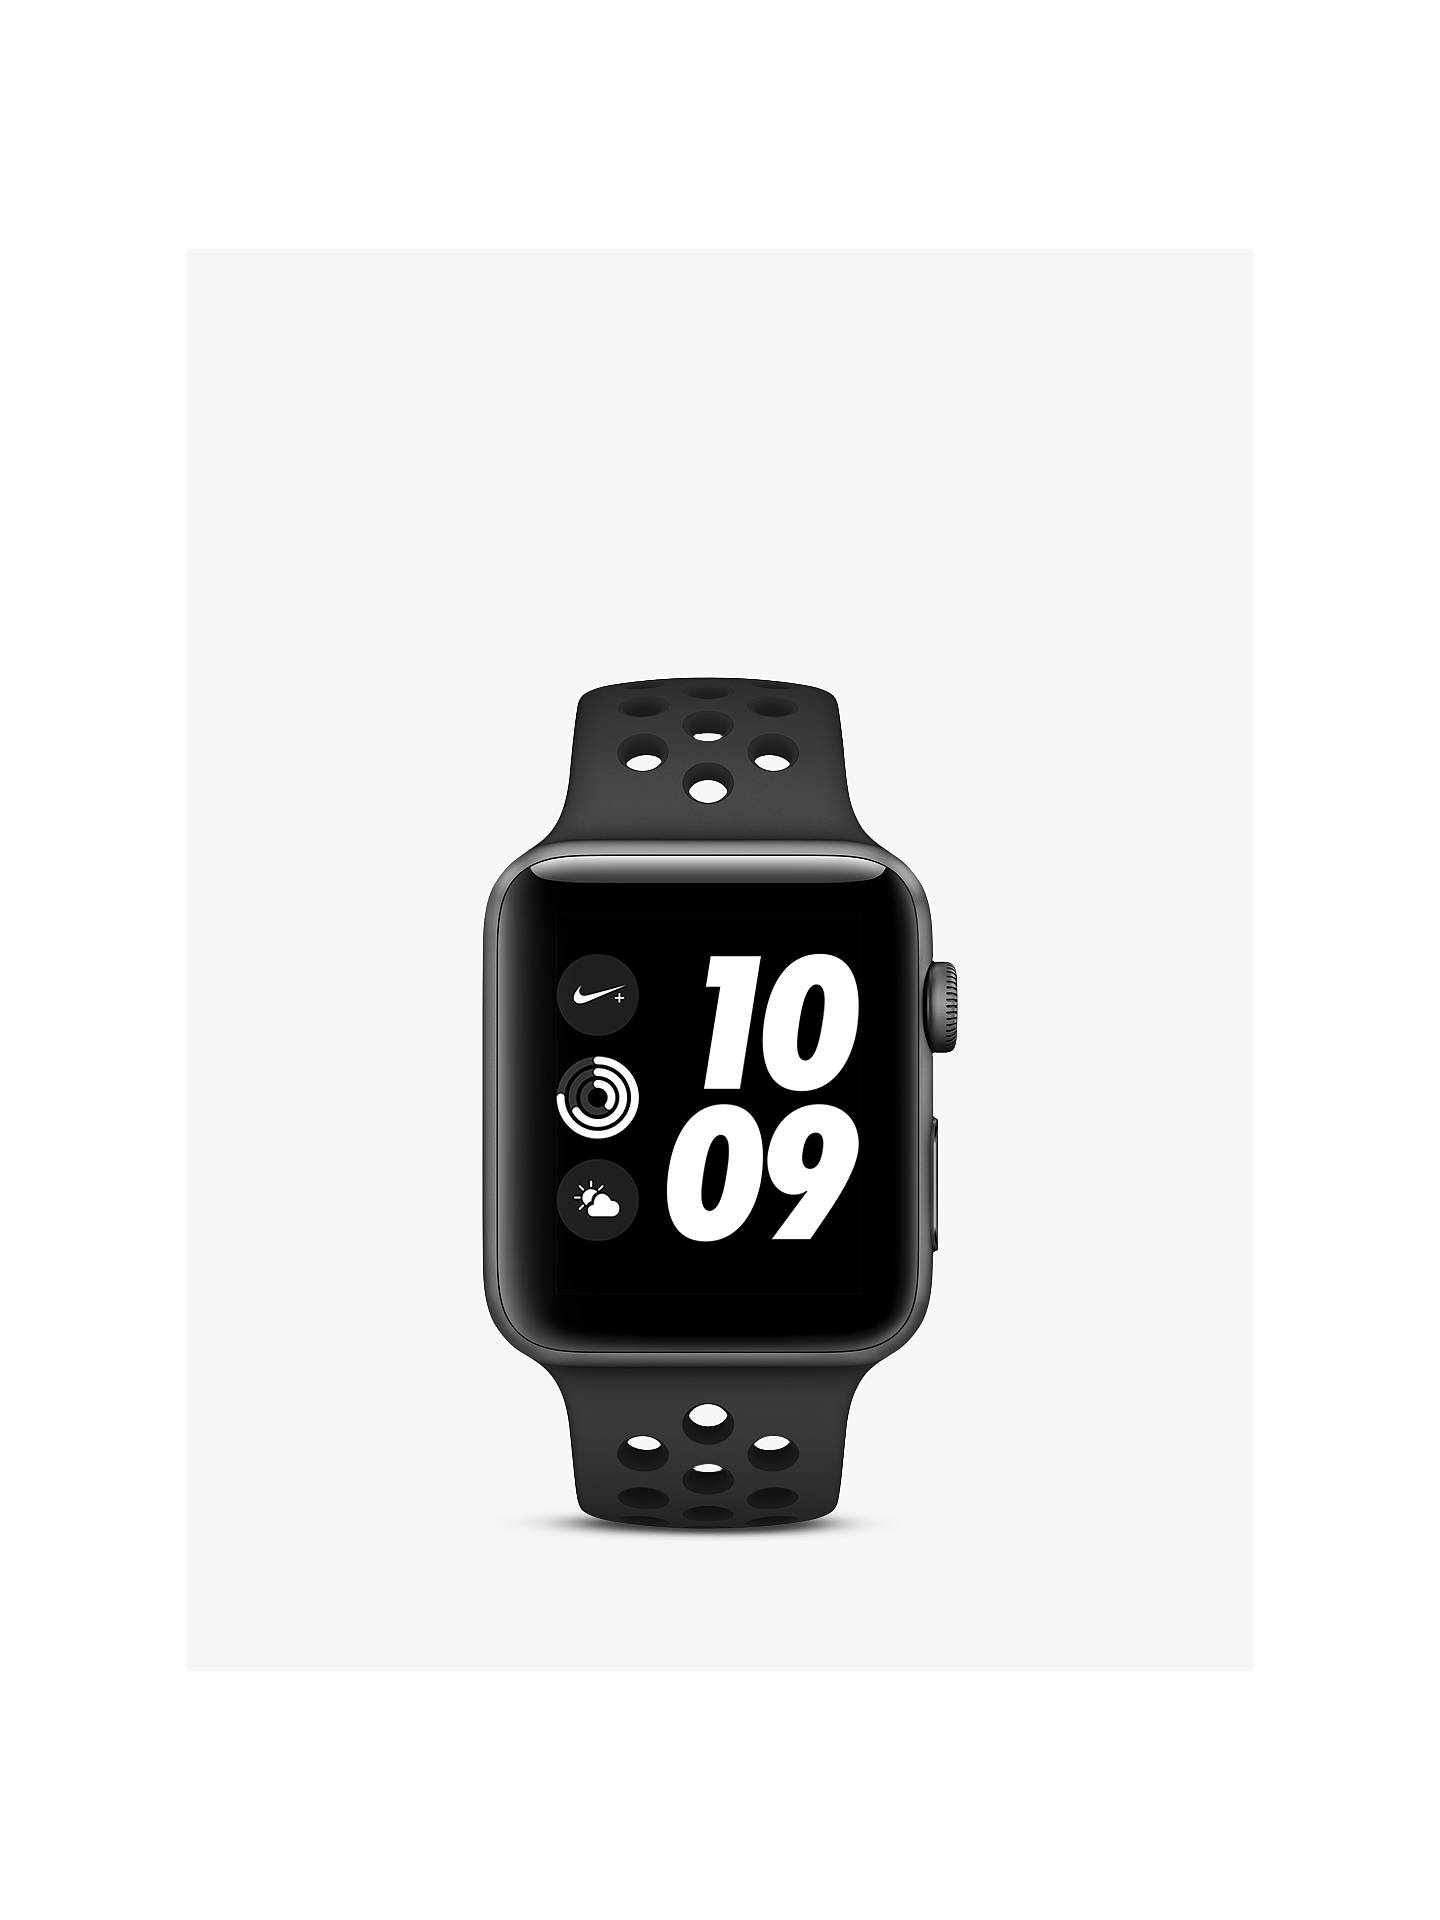 BuyApple Watch Nike+ Series 3, GPS, 42mm Space Grey Aluminium Case with Sport Band, Anthracite / Black Nike Online at johnlewis.com